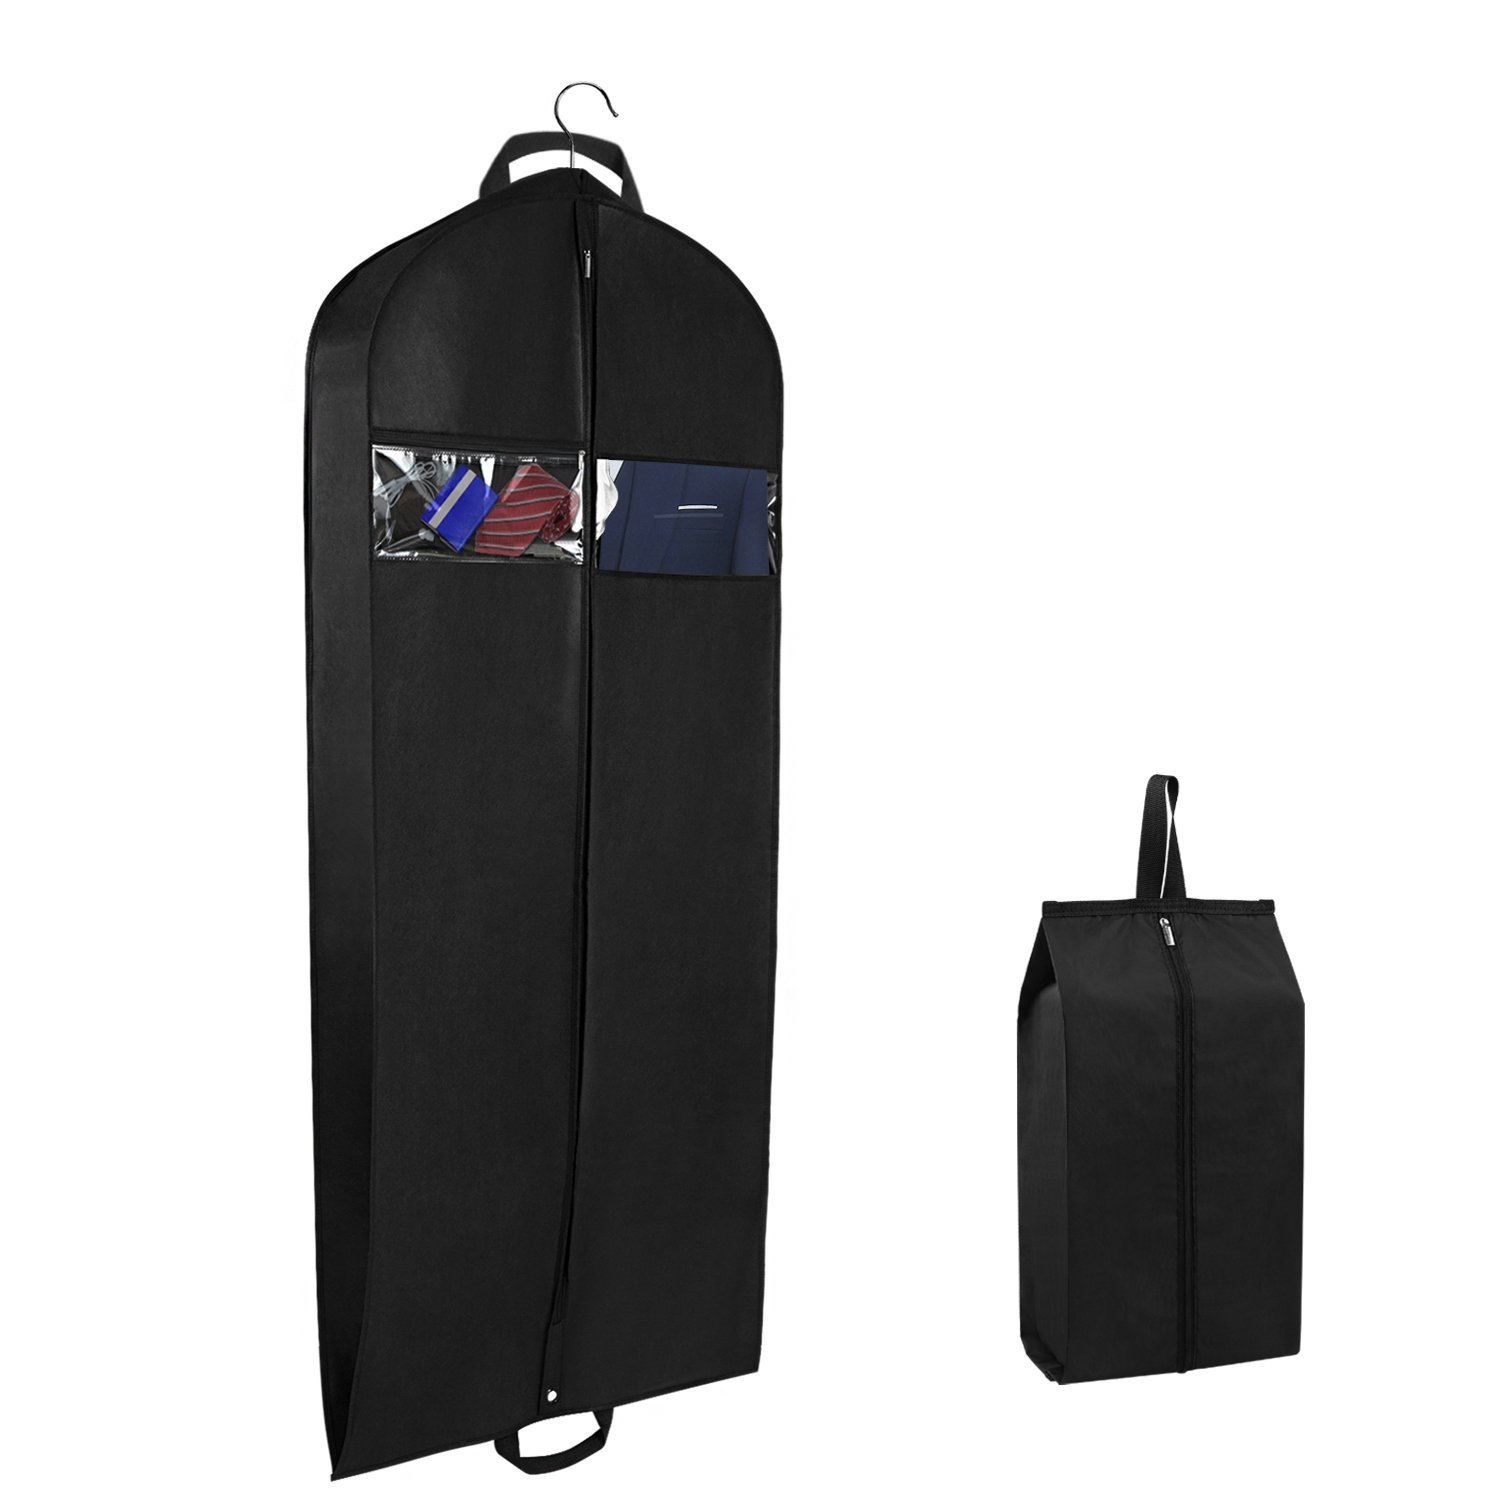 Zilink Garment Bags Suit Bags for Travel 60x24x5.9 Gusseted with Zipper Pockets and Bonus Bag Zilink Technology